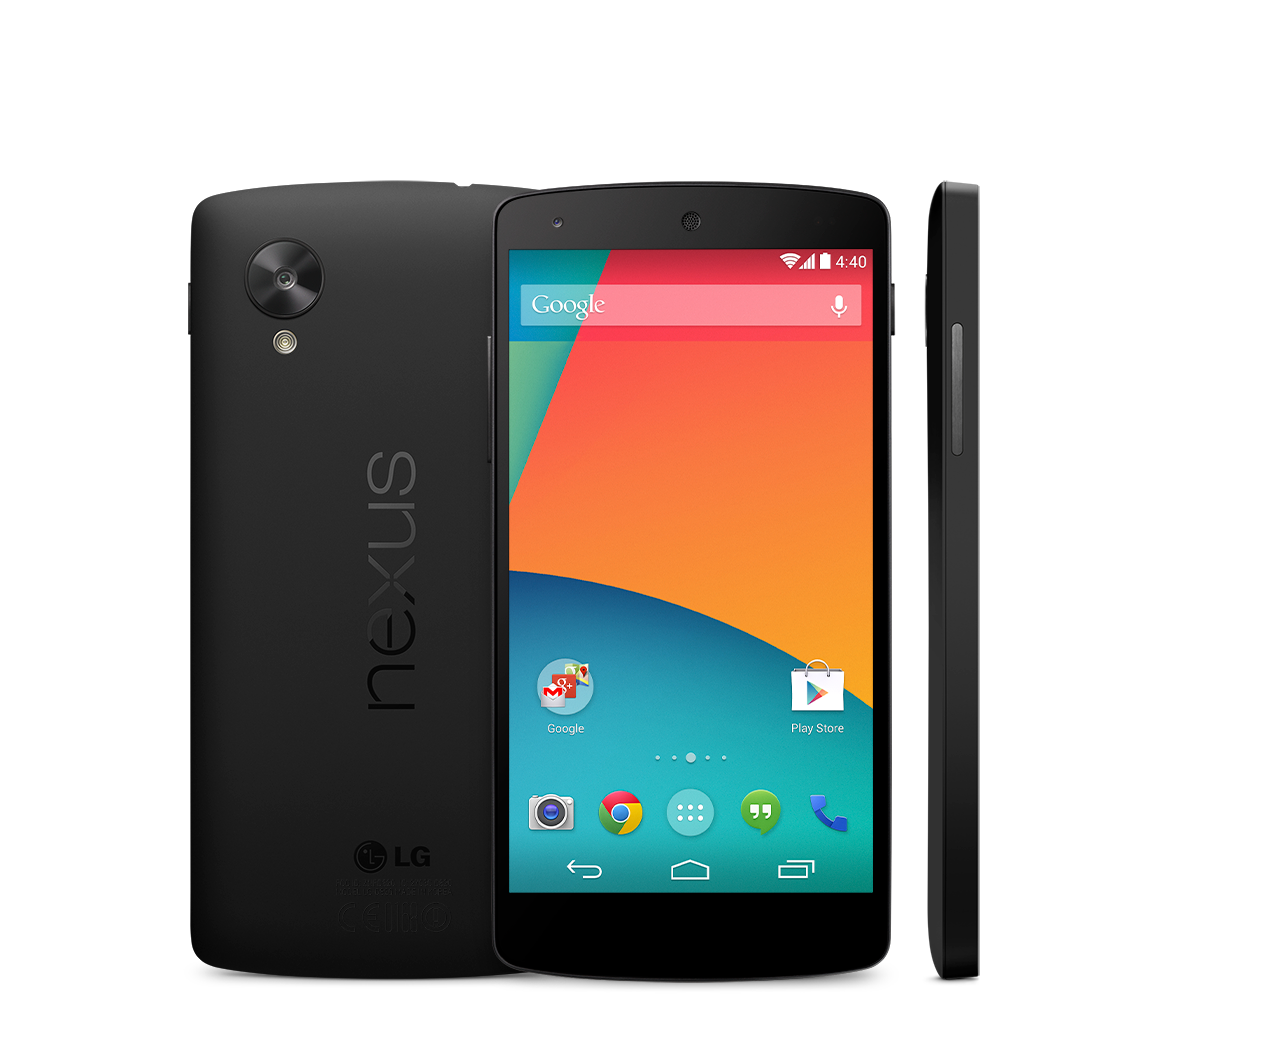 Nexus 5 Appears on Google Play! Starting Price of $349 (Updated)